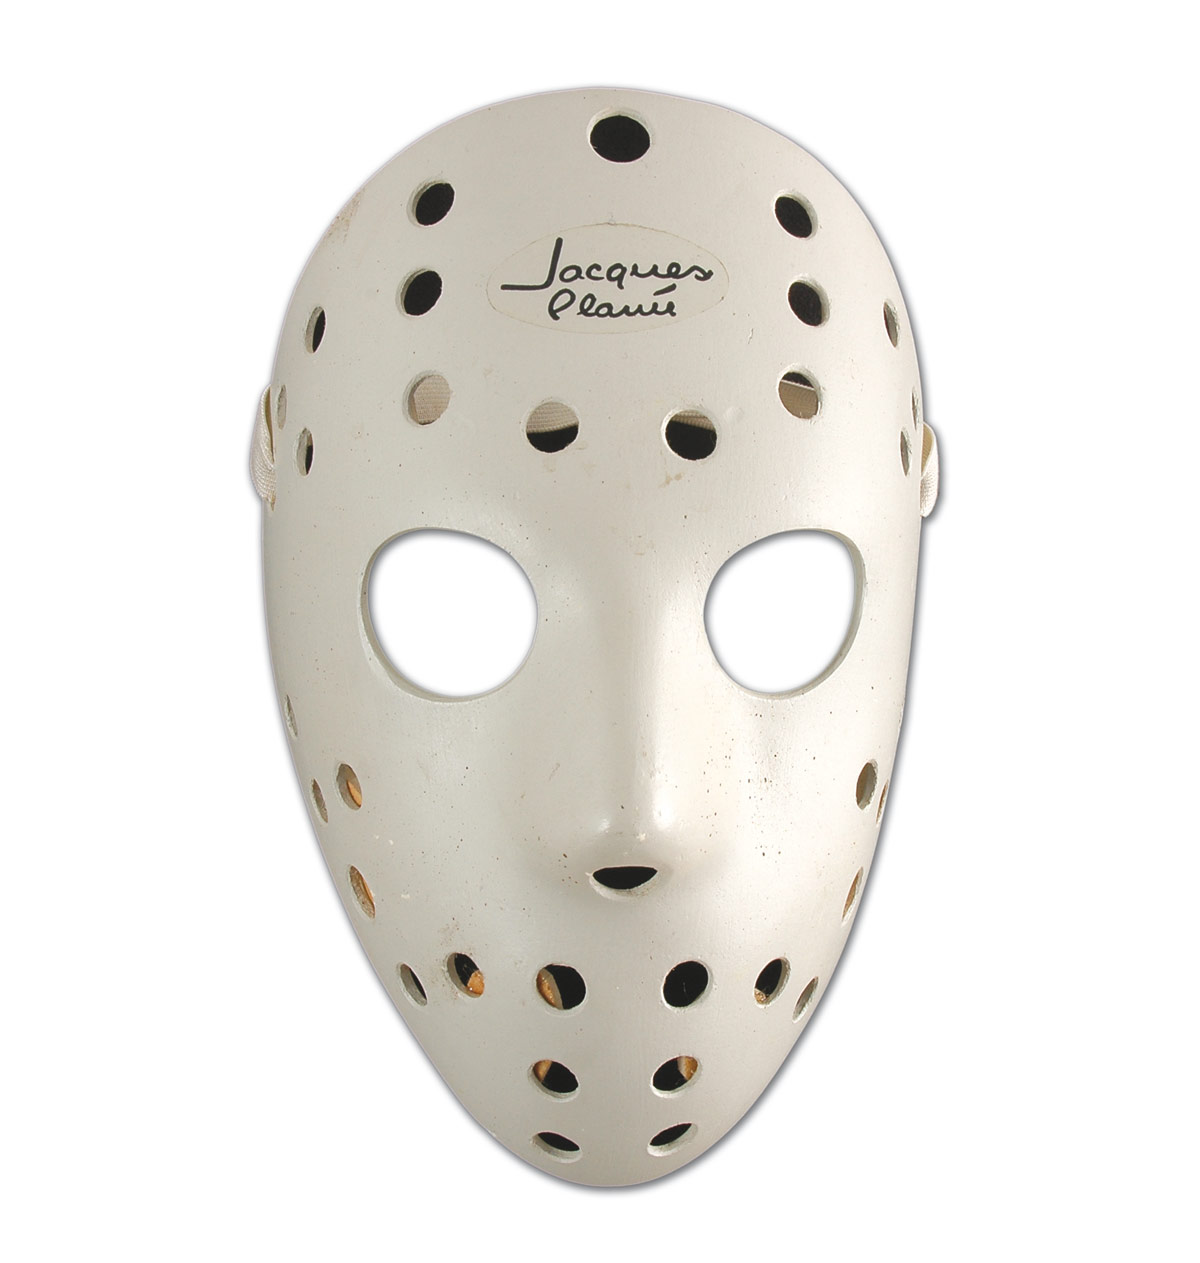 Plante Original Jasonlivessince1980 S Friday The 13th Blog The Original Mask By